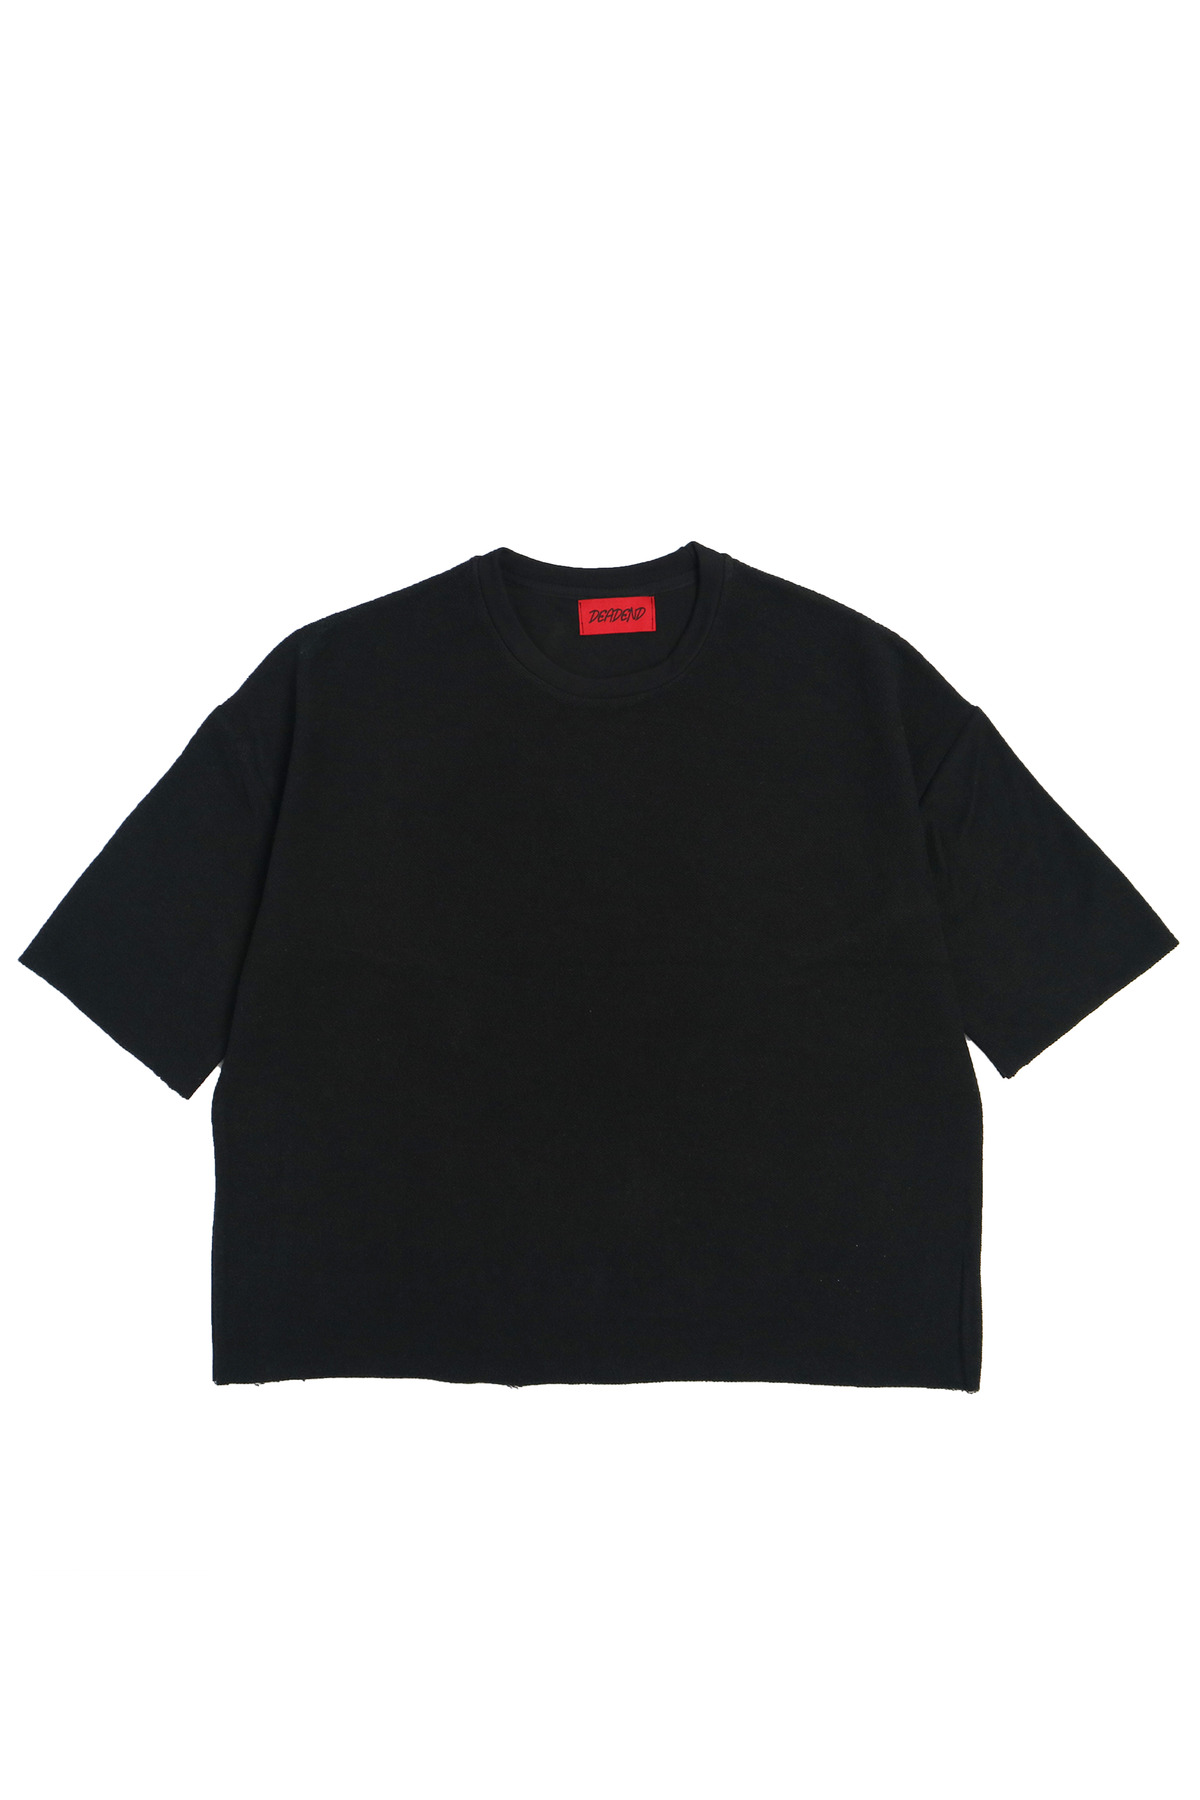 BLACK 3/4 REVERSED SWEAT SHIRTS